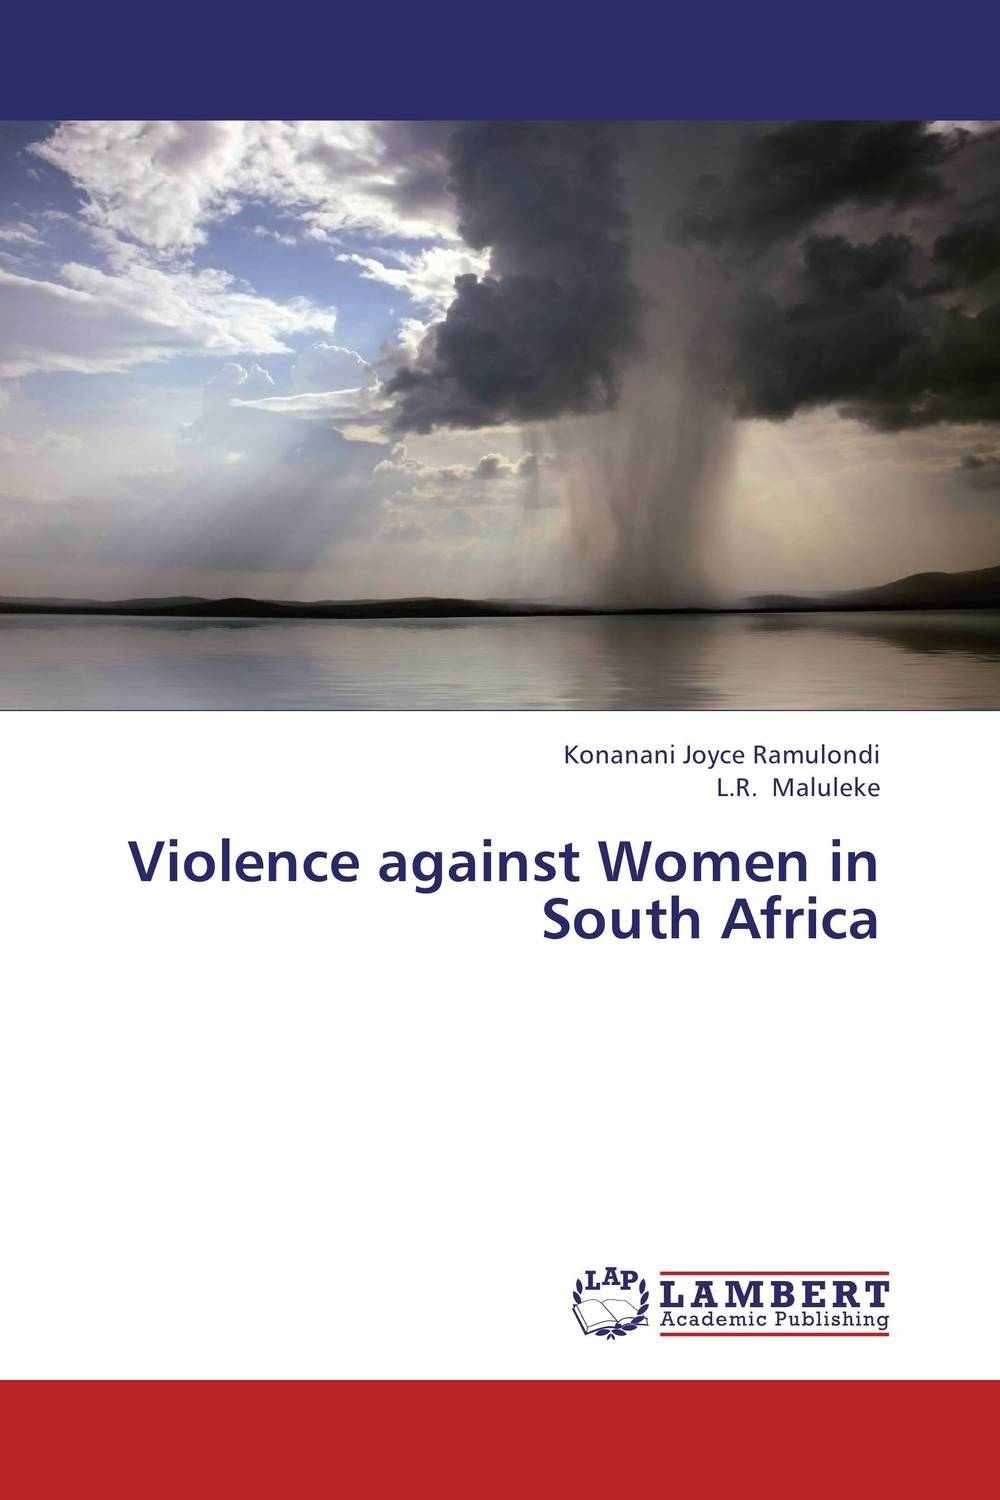 цена на Violence against Women in South Africa